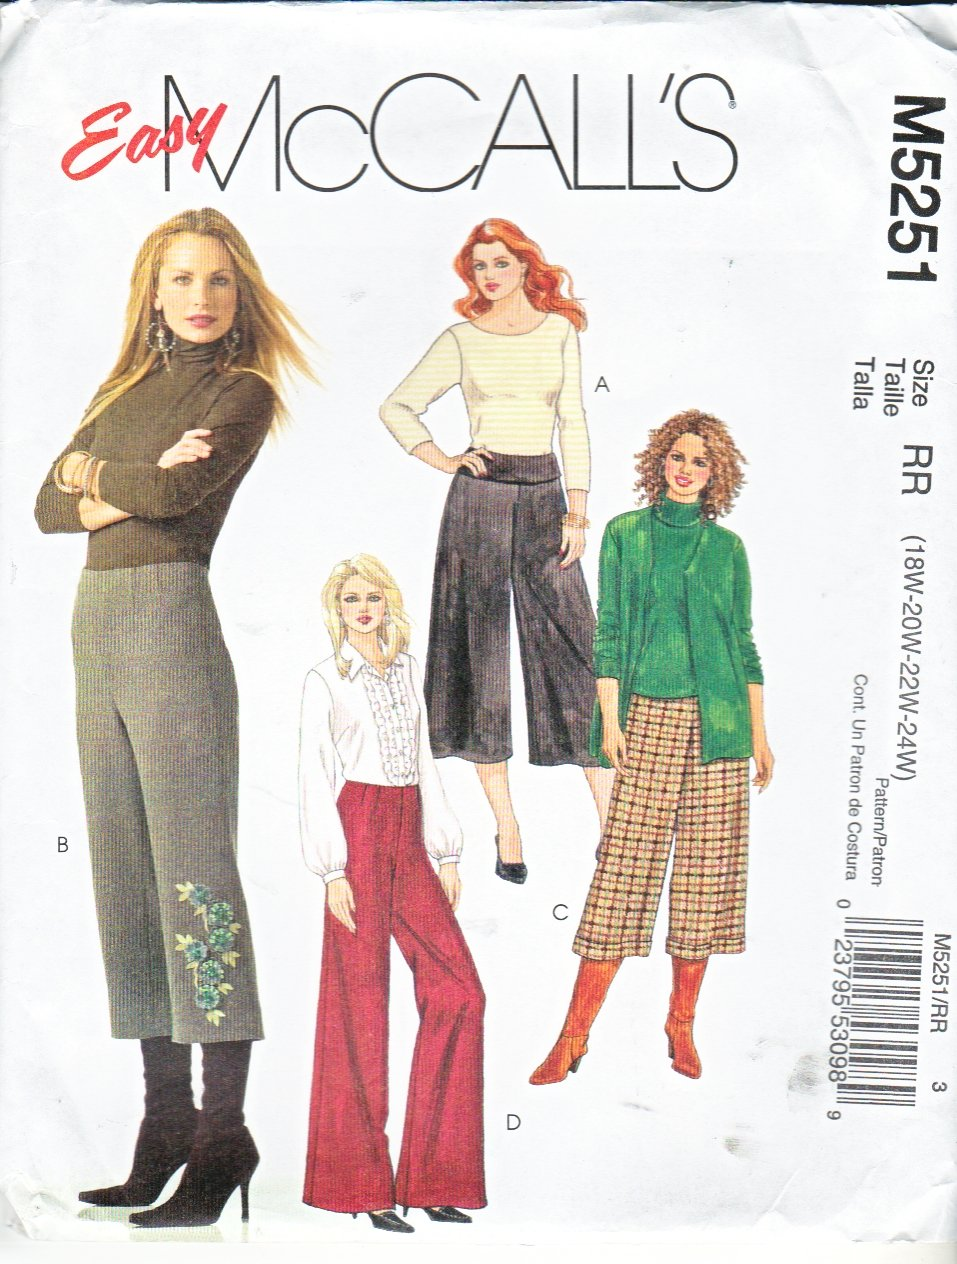 McCall�s Sewing Pattern 5251 Womans Plus Size 18W-24W Easy Gauchos Cropped Bell Bottom Pants